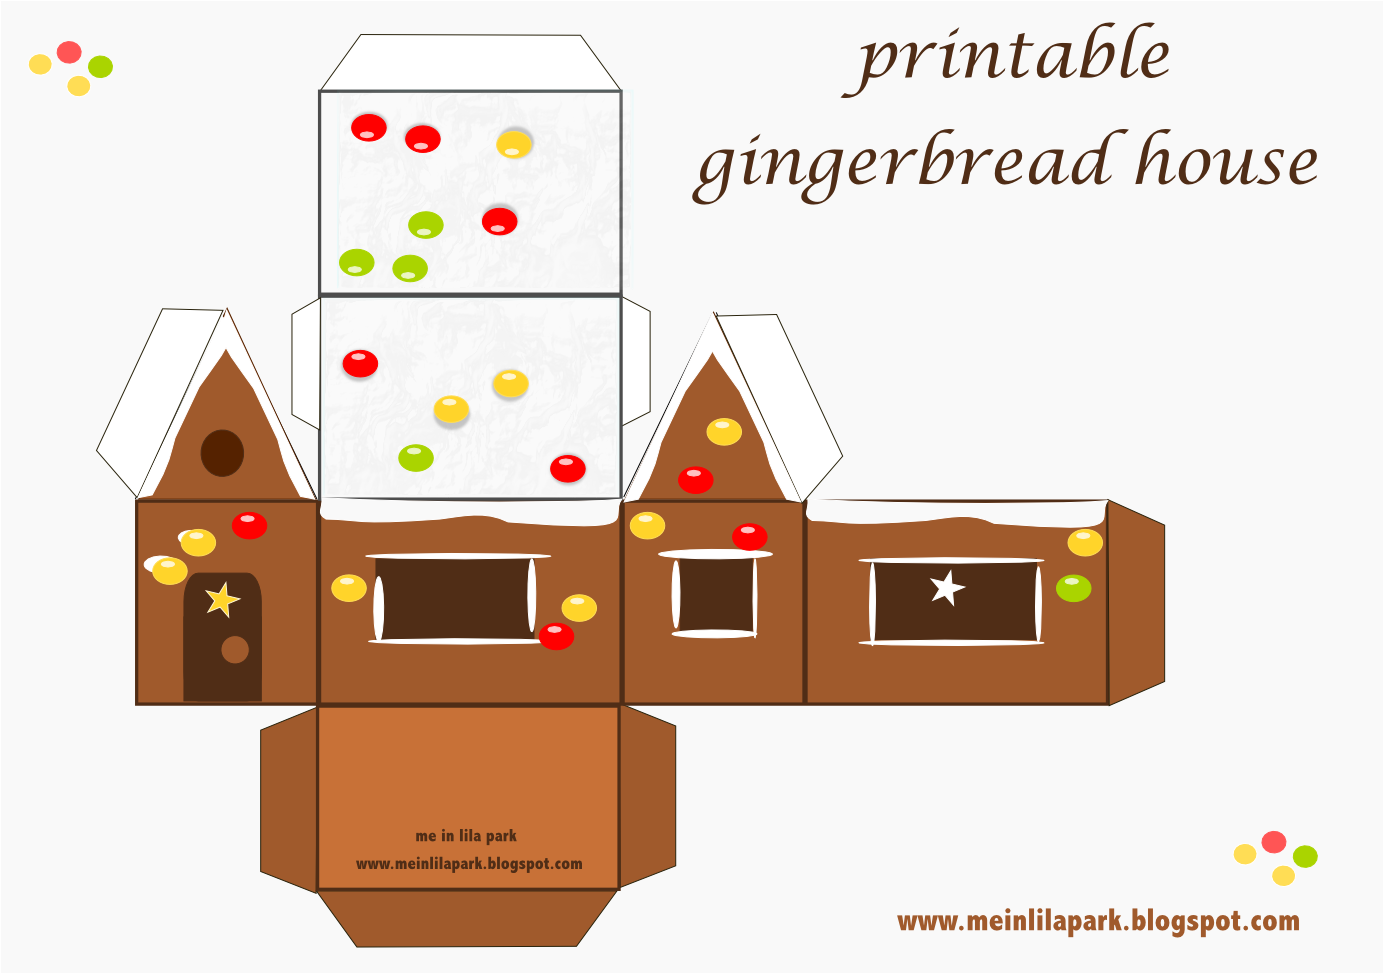 Free printable gingerbread house ausdruckbares for Paper house templates to print